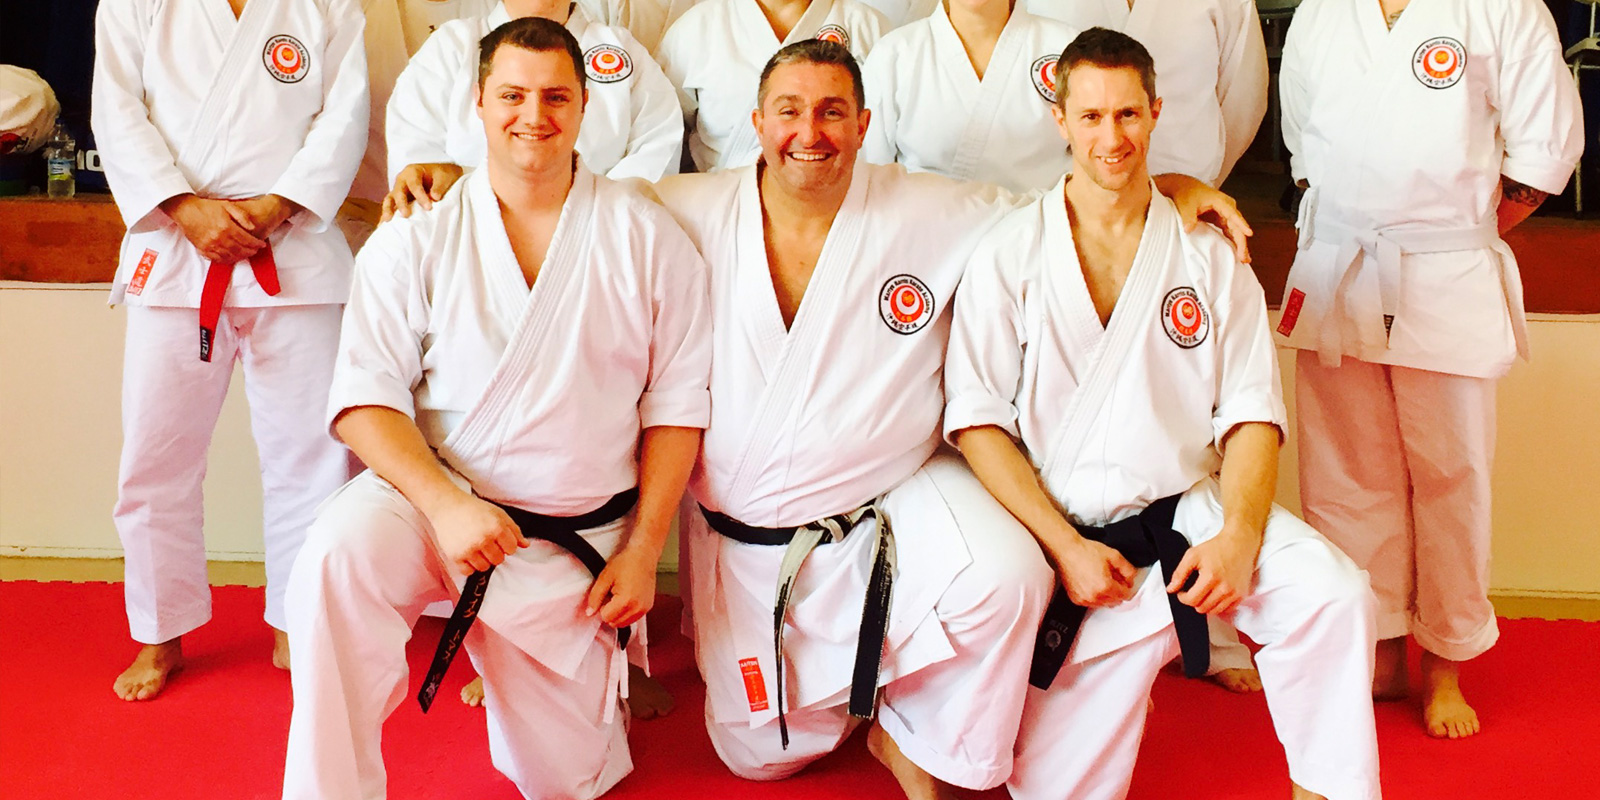 About Martyn Harris and Karate in Cardiff